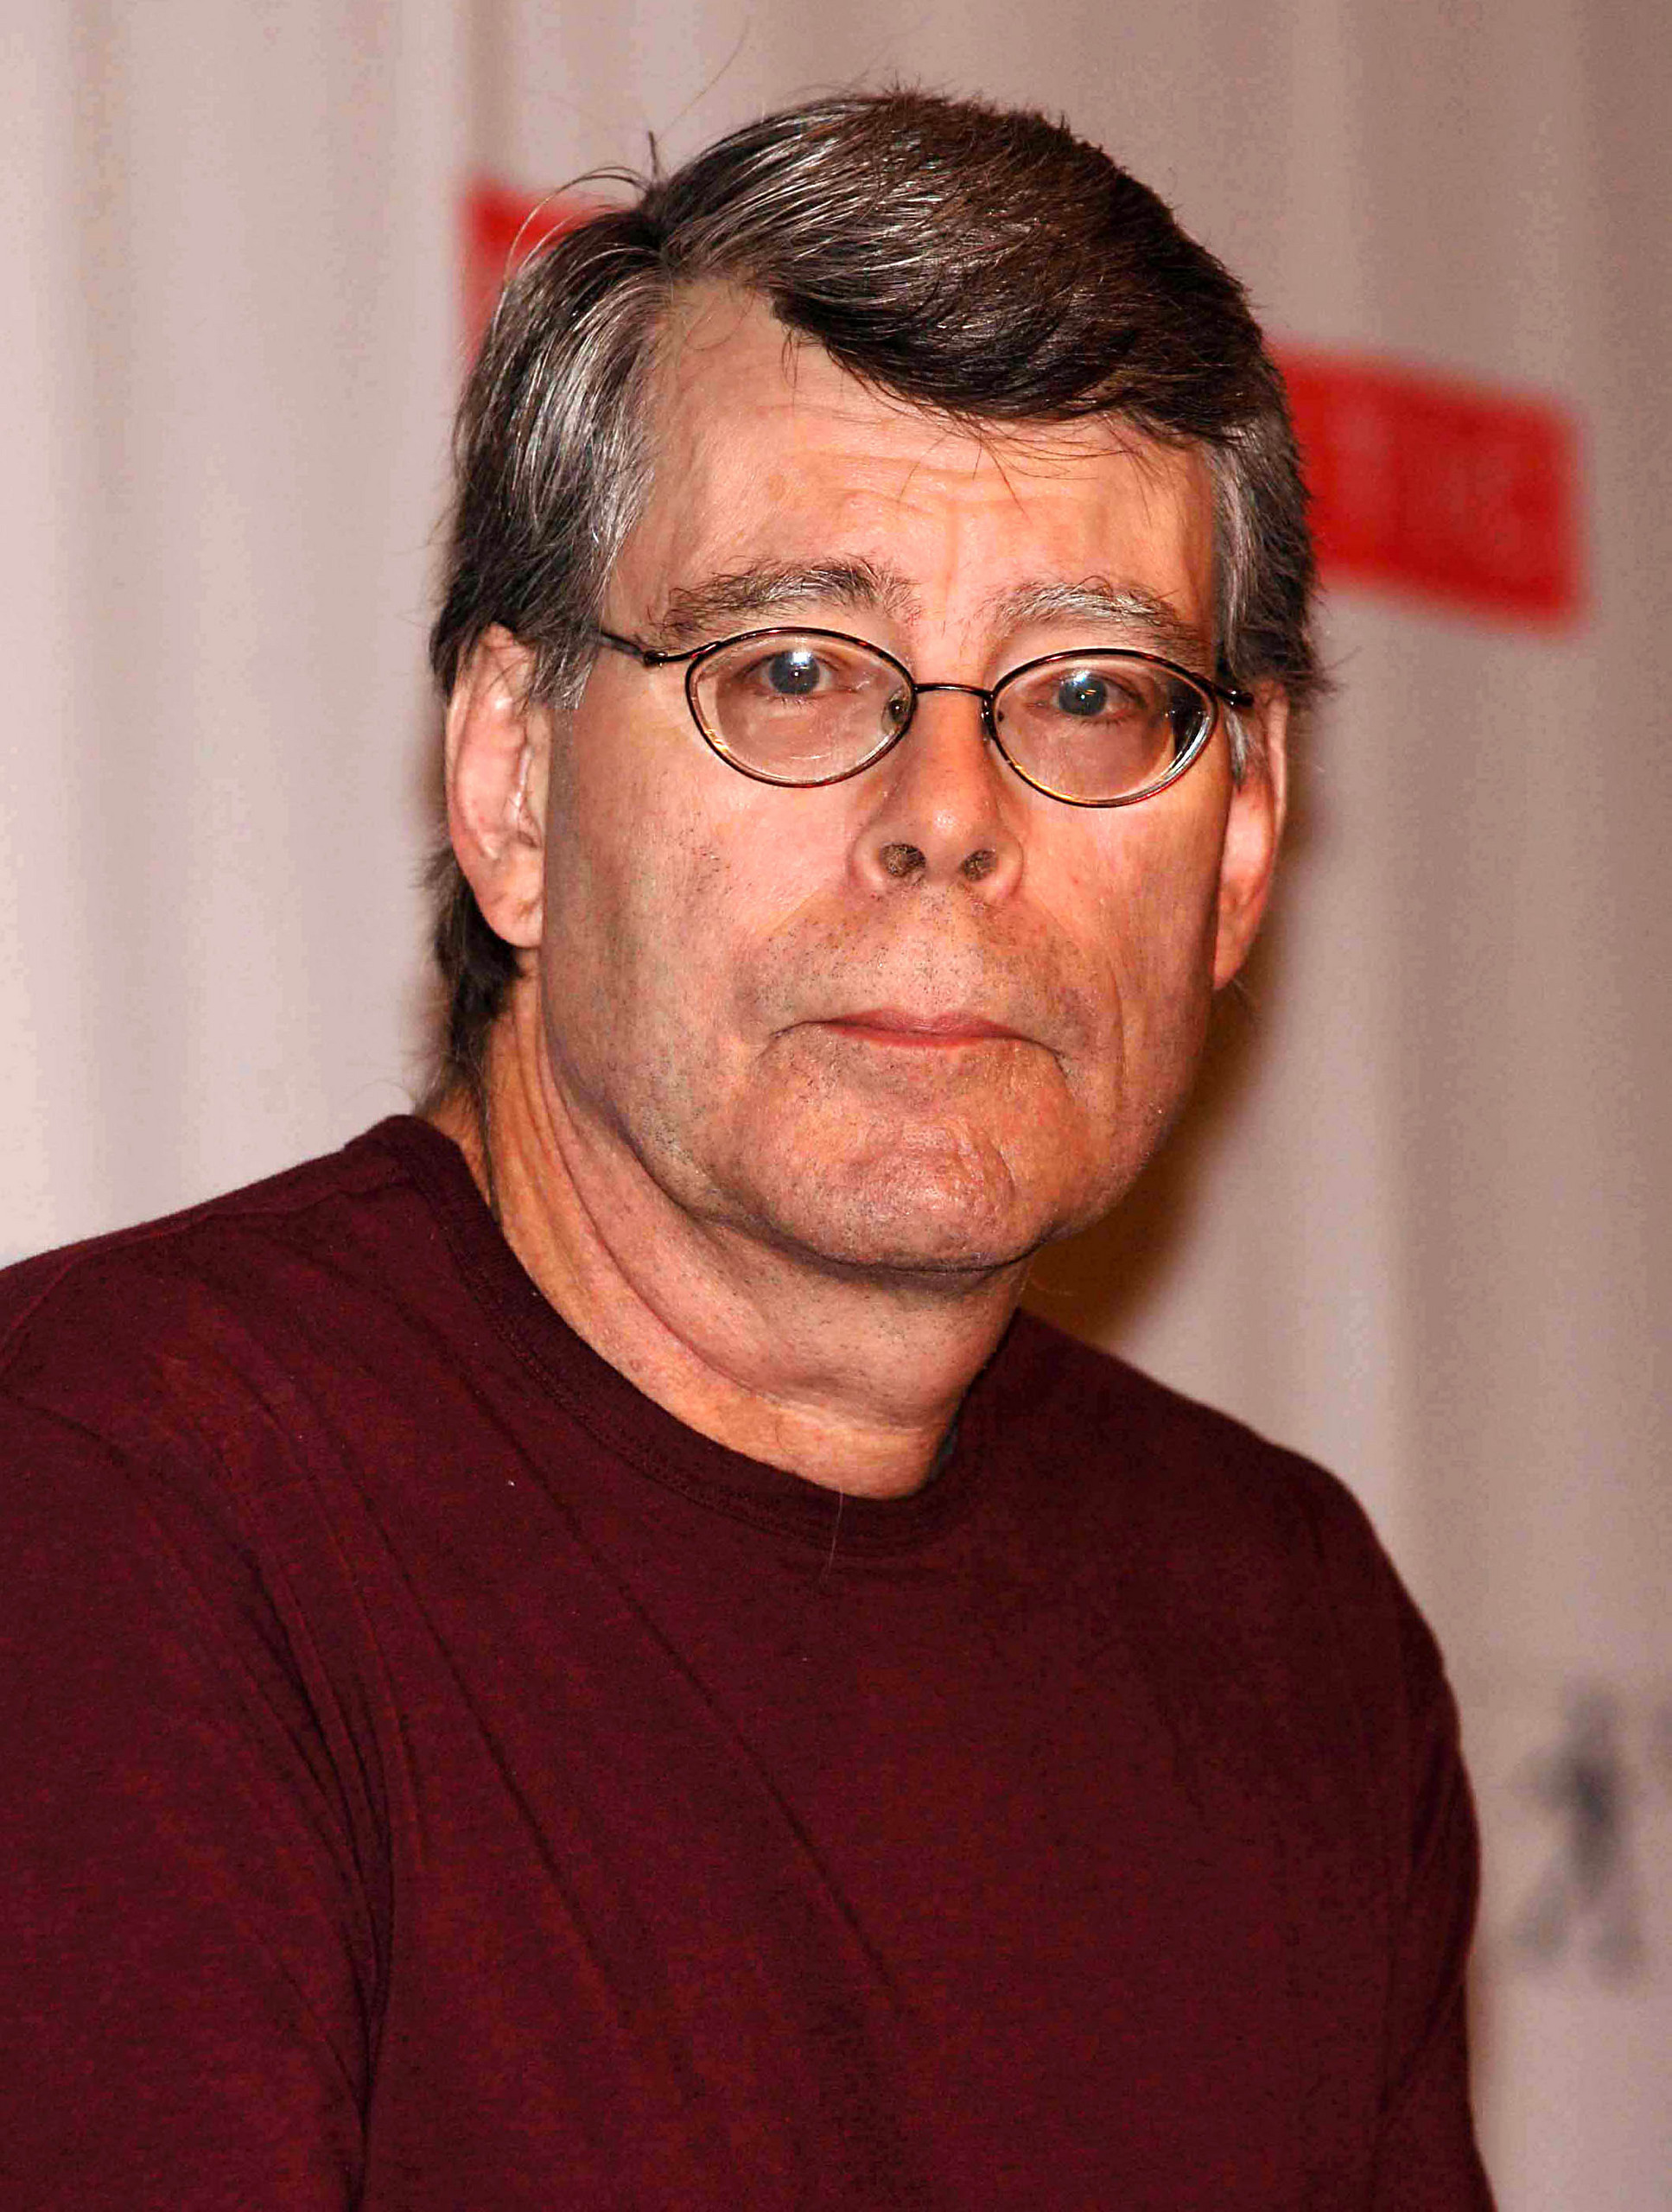 Stephen King Stephen King Photo 20101133 Fanpop